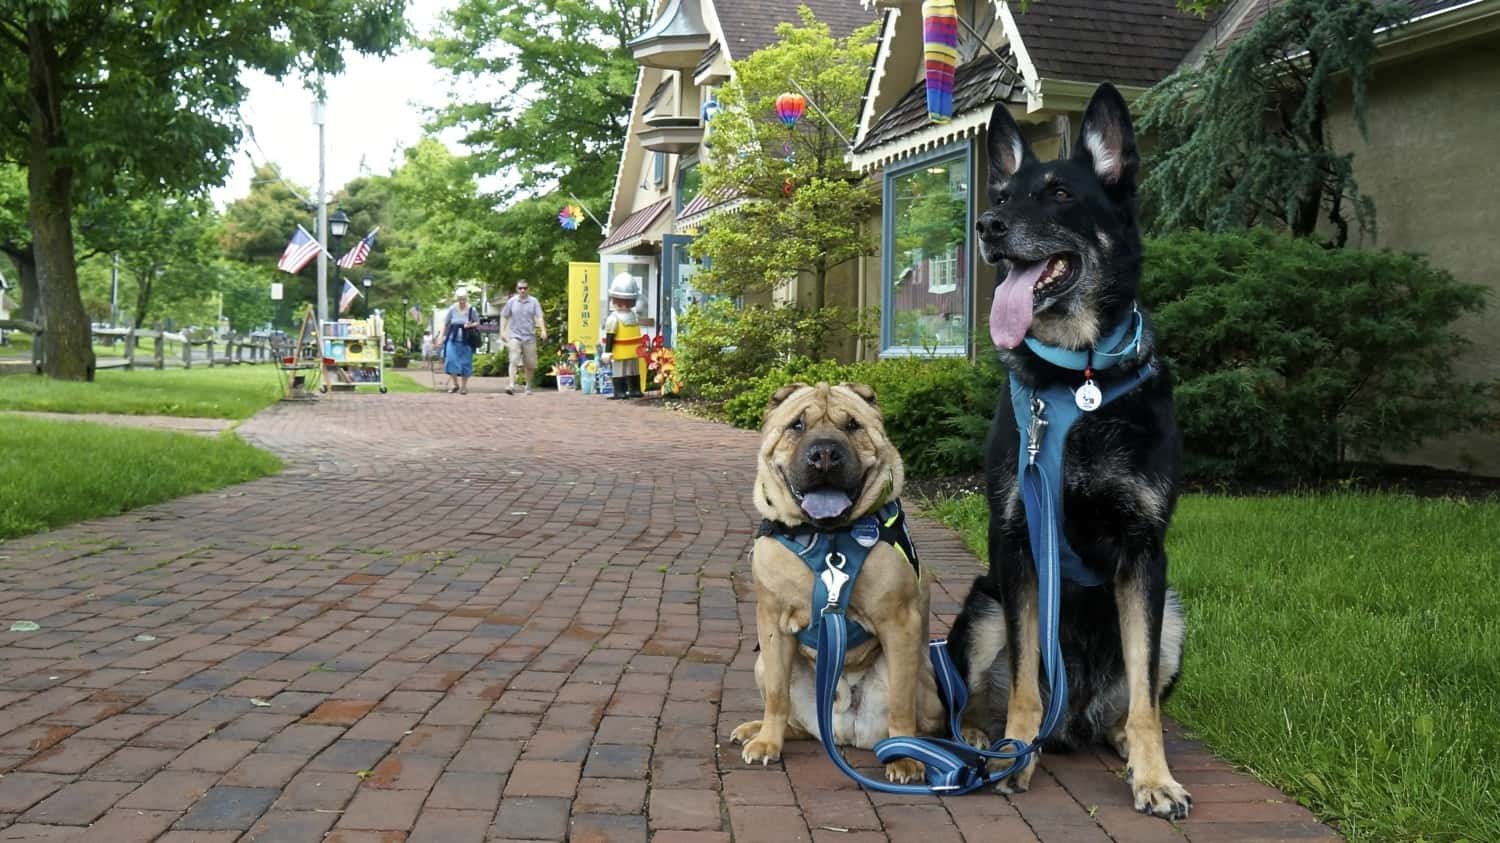 Dog Friendly Peddlers Village in Bucks County, Pennsylvania